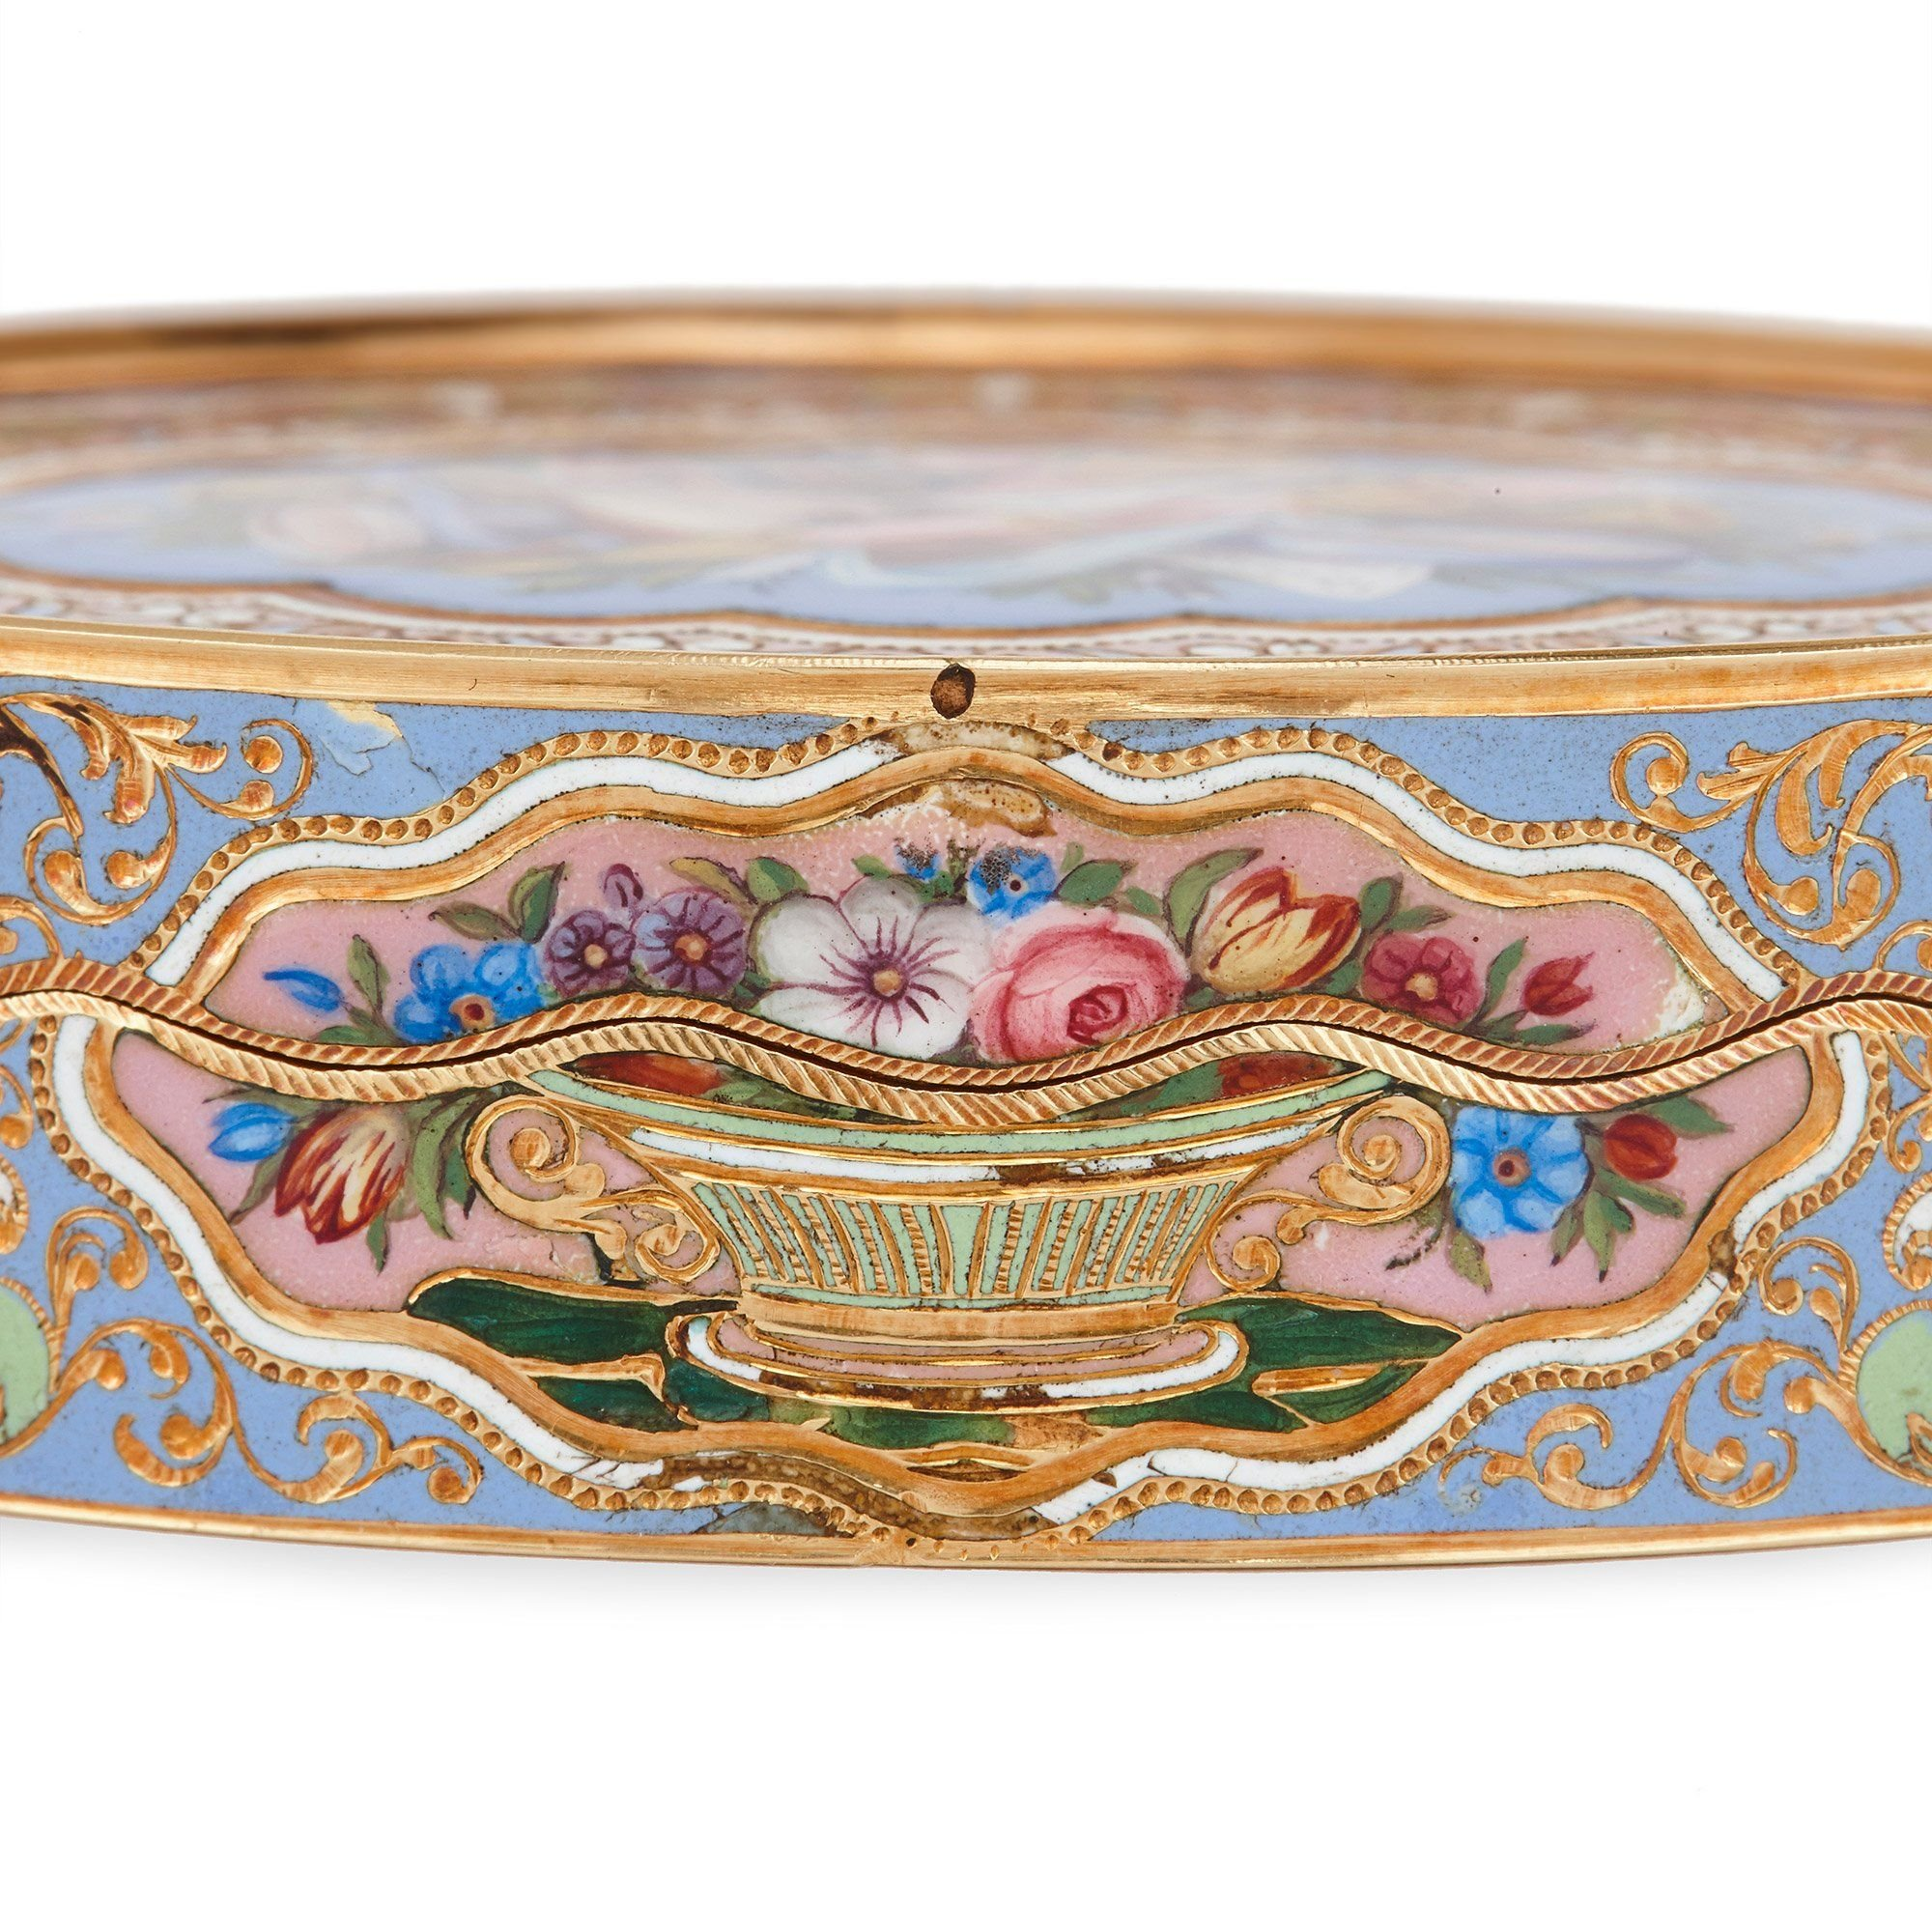 Antique Swiss Gold And Enamel Snuff Box Mayfair Gallery